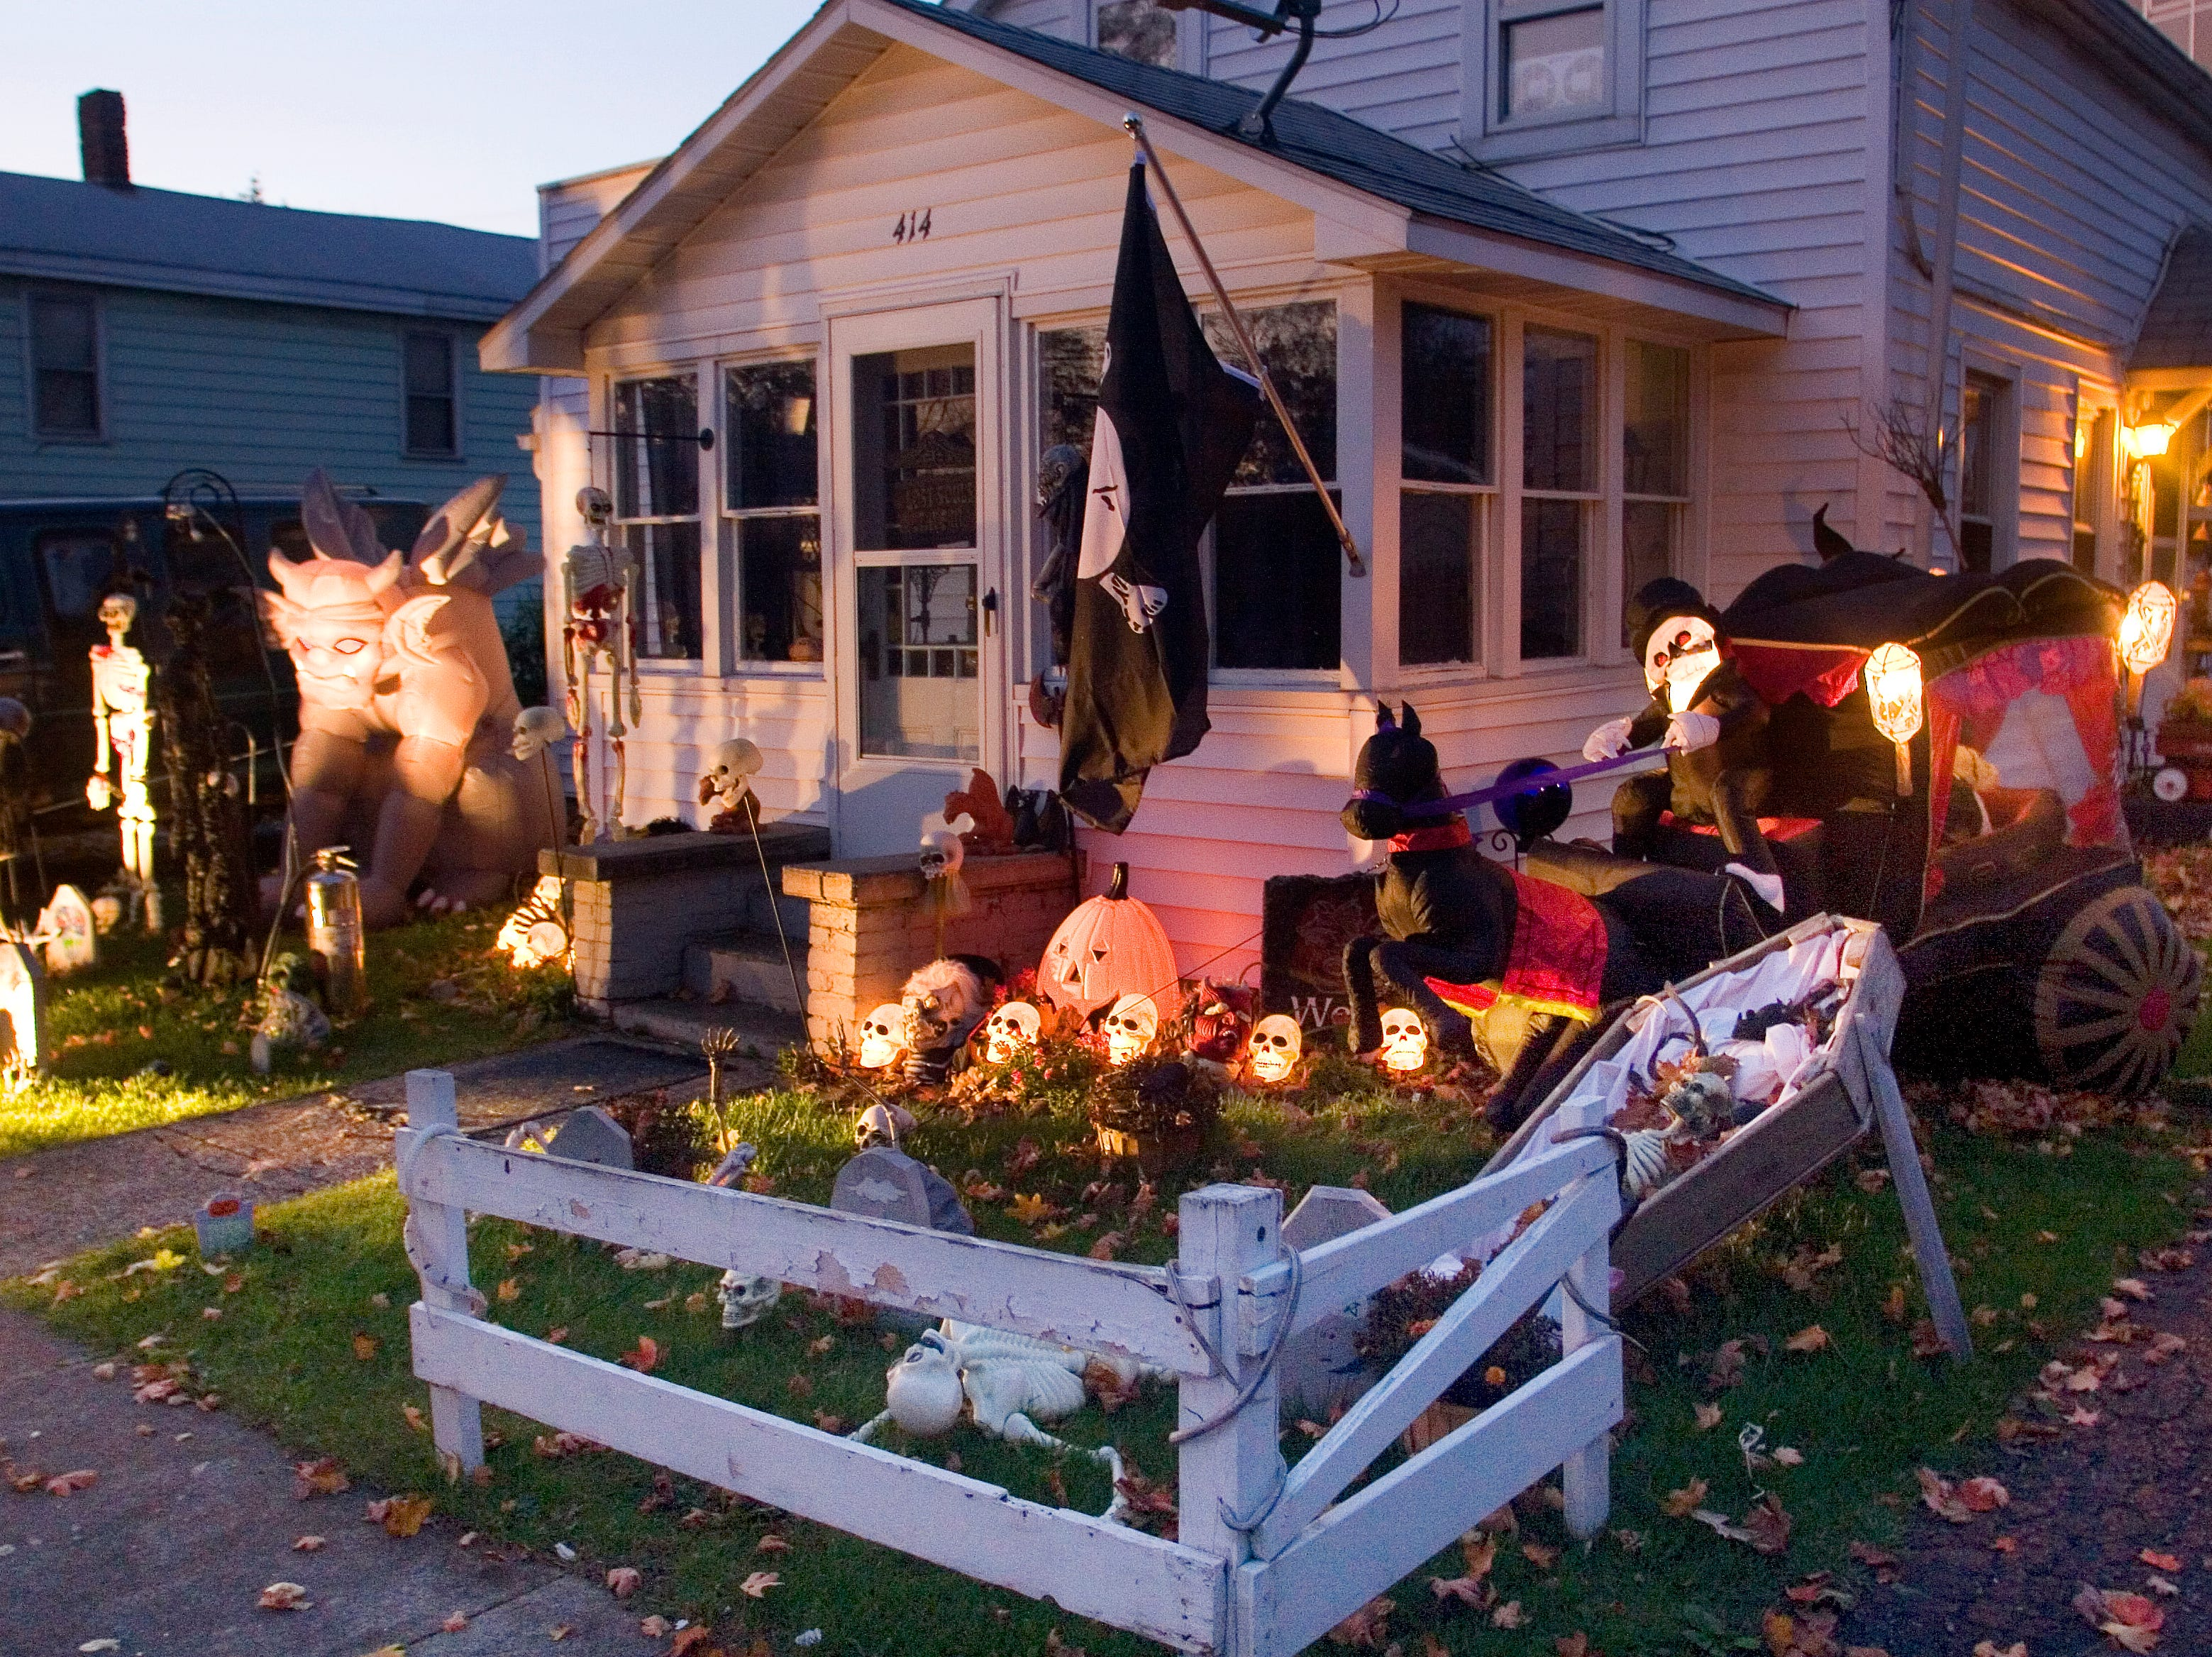 2007: A Horseheads home decorated for Halloween.